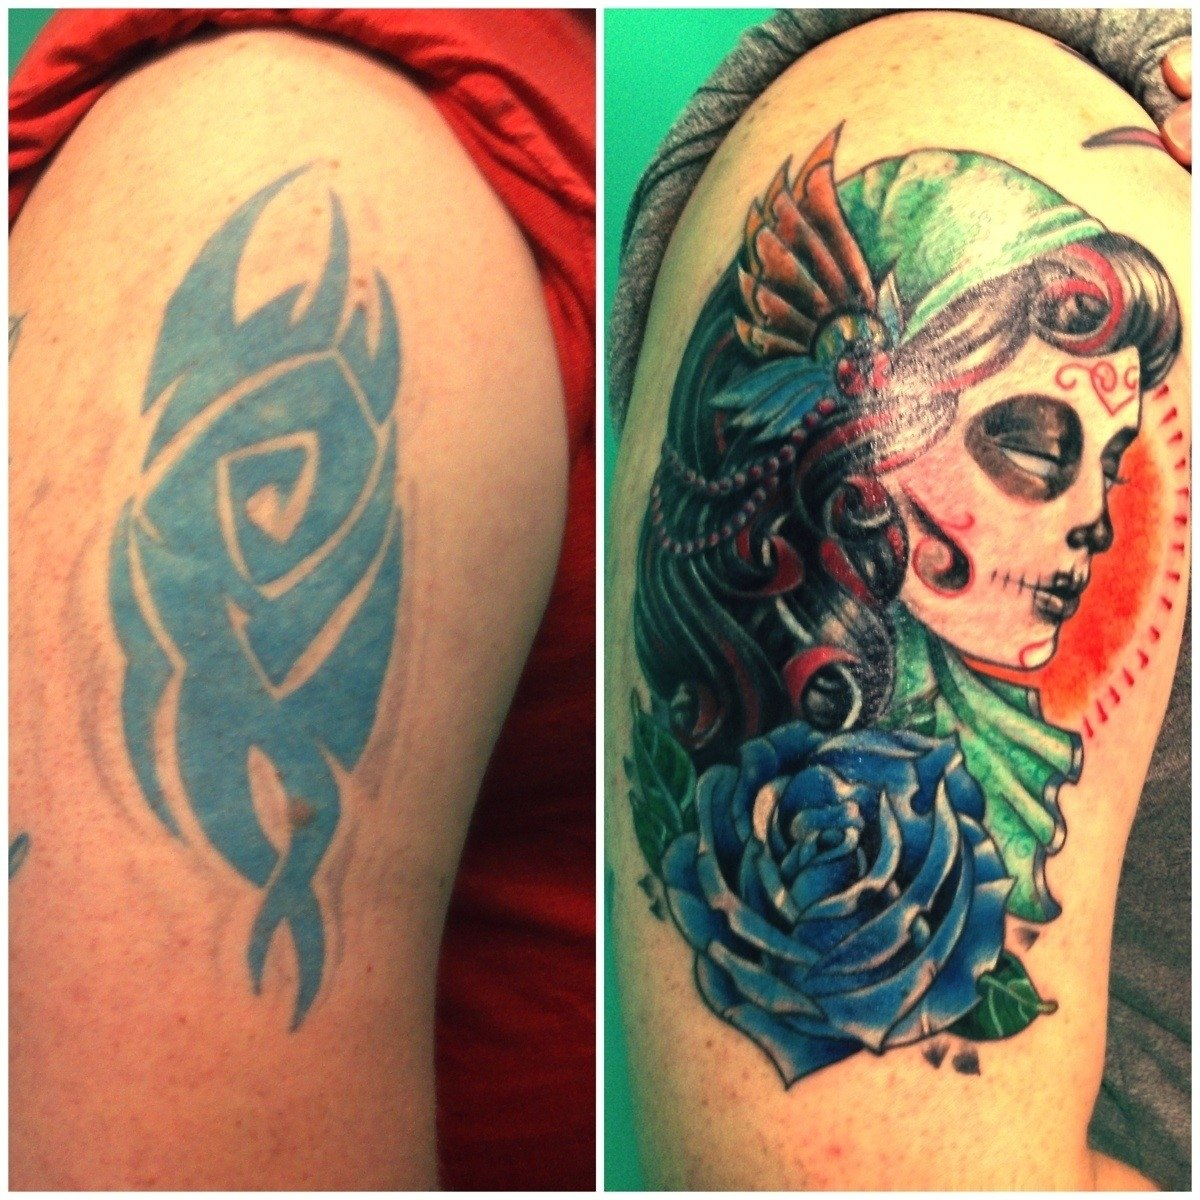 10 Nice Tattoo Ideas For Cover Ups tattoo cover up ideas tattoo covering tattoo and ink art 2 2020